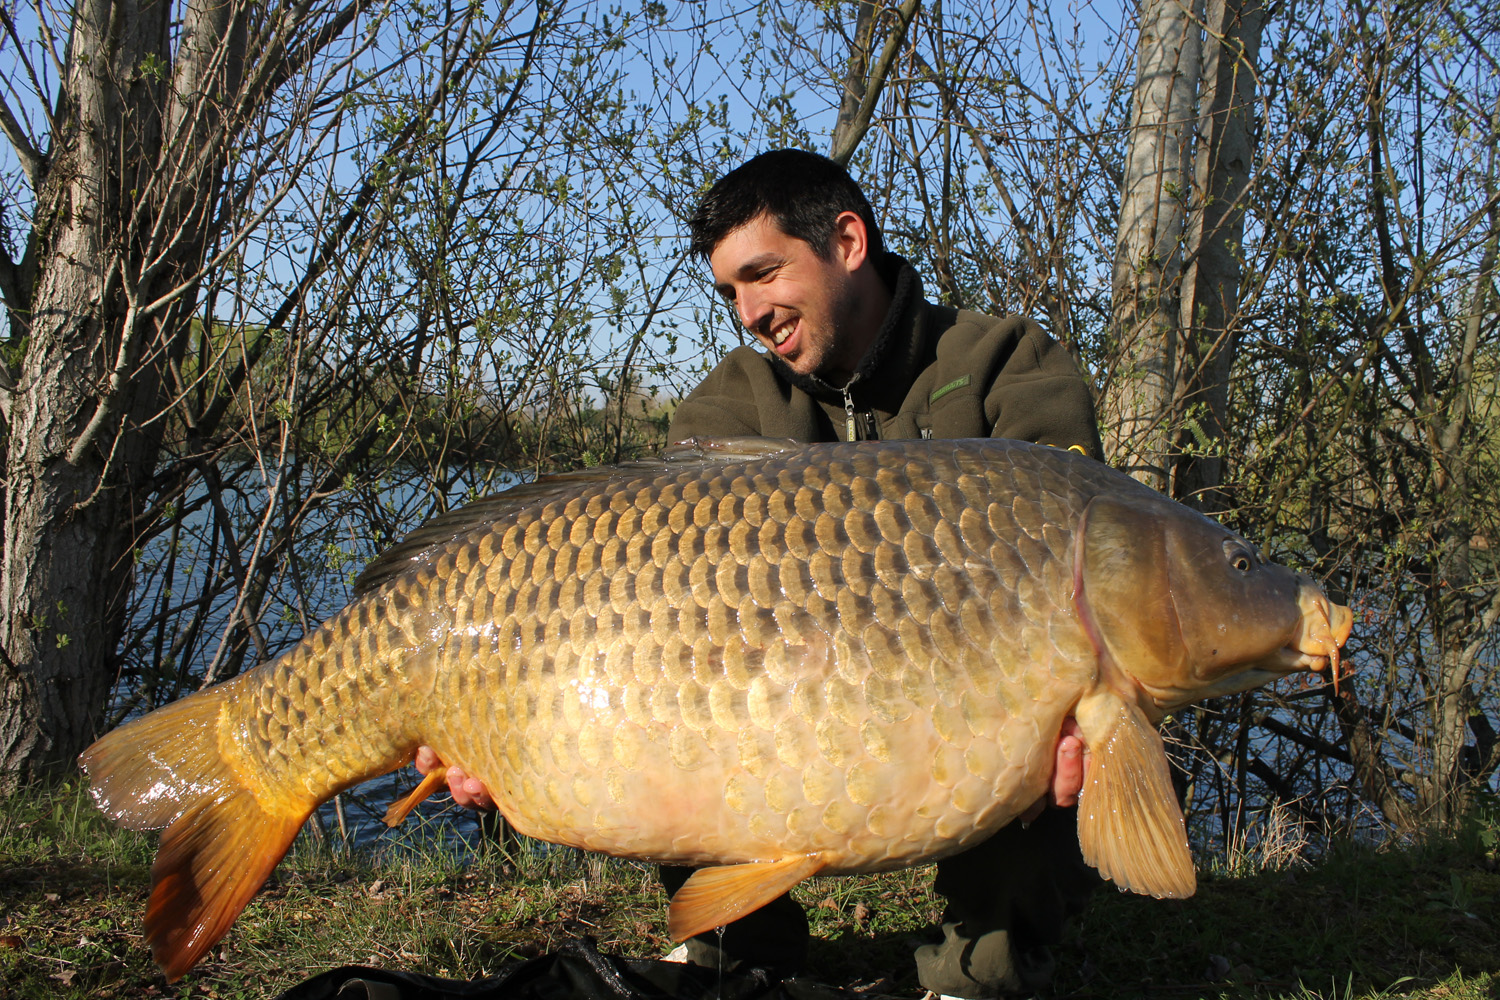 http://www.starbaits.com/fichiers/images/team/gallery/DUCERE_Cedric/20-DUCERE-CEDRIC.JPG